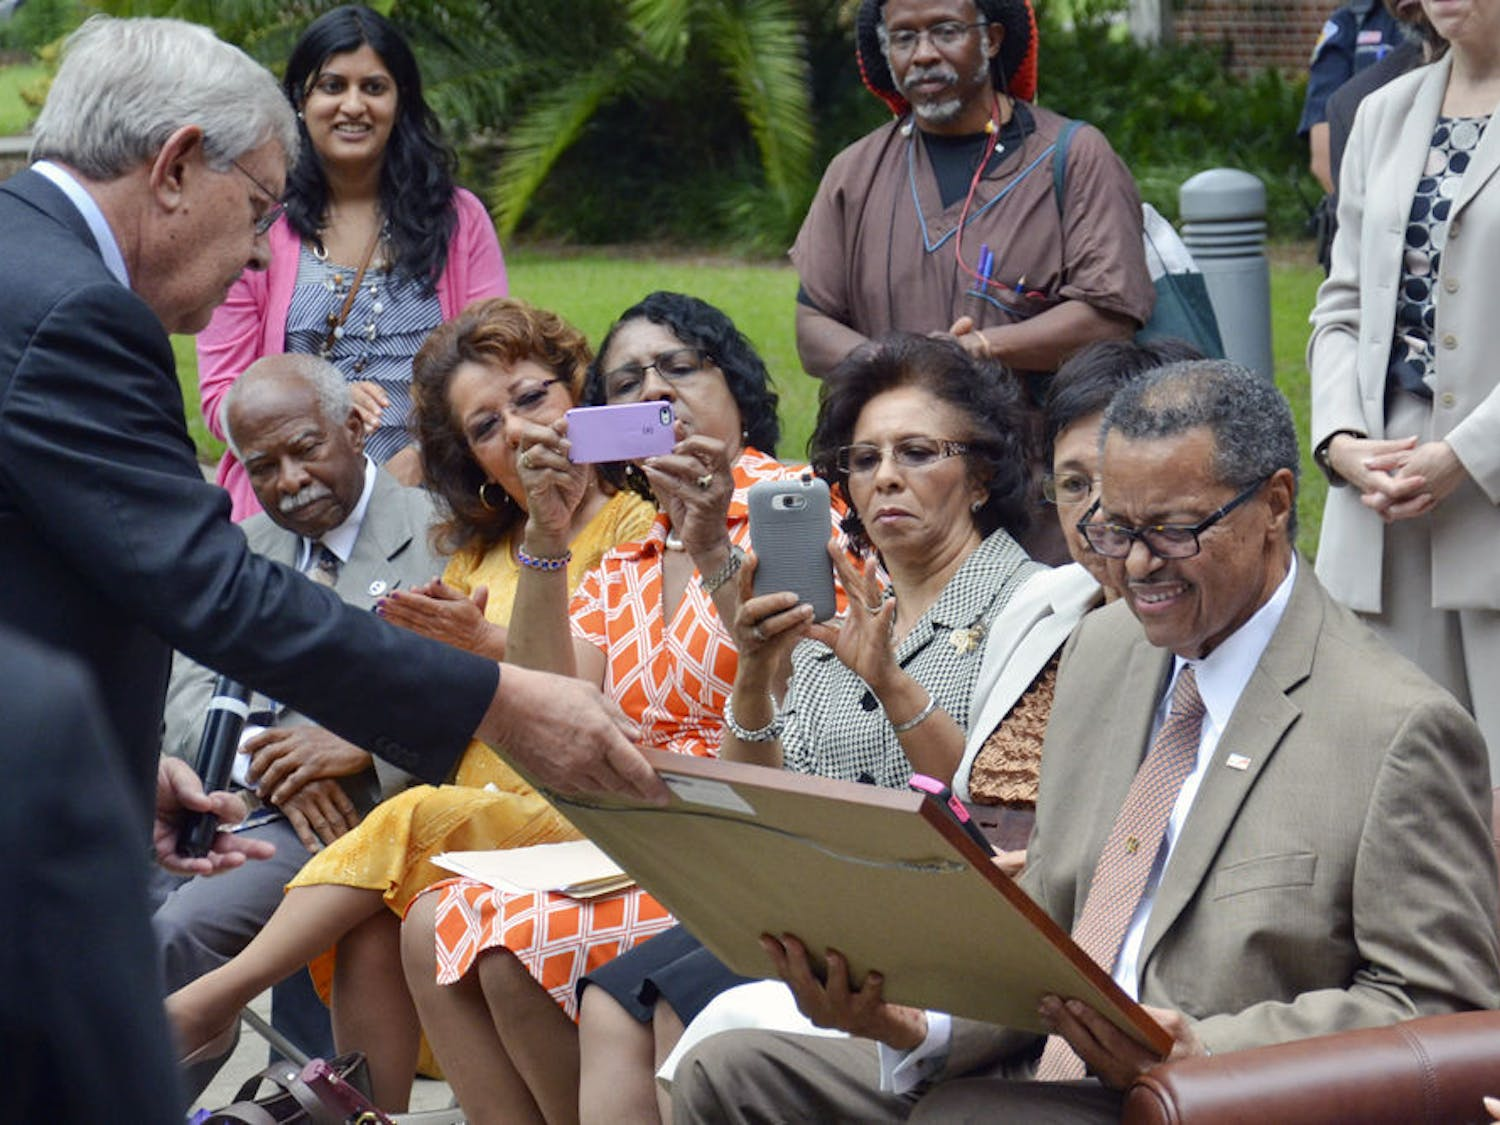 Judge Stephan P. Mickle, the first African-American to get a bachelor's degree from UF and the second to graduate from UF's Levin College of Law, smiles as he receives a plaque from George Dawson, the law school's interim dean, during a tree dedication ceremony in 2015. About 75 people attended the ceremony on the UF Law West Courtyard.